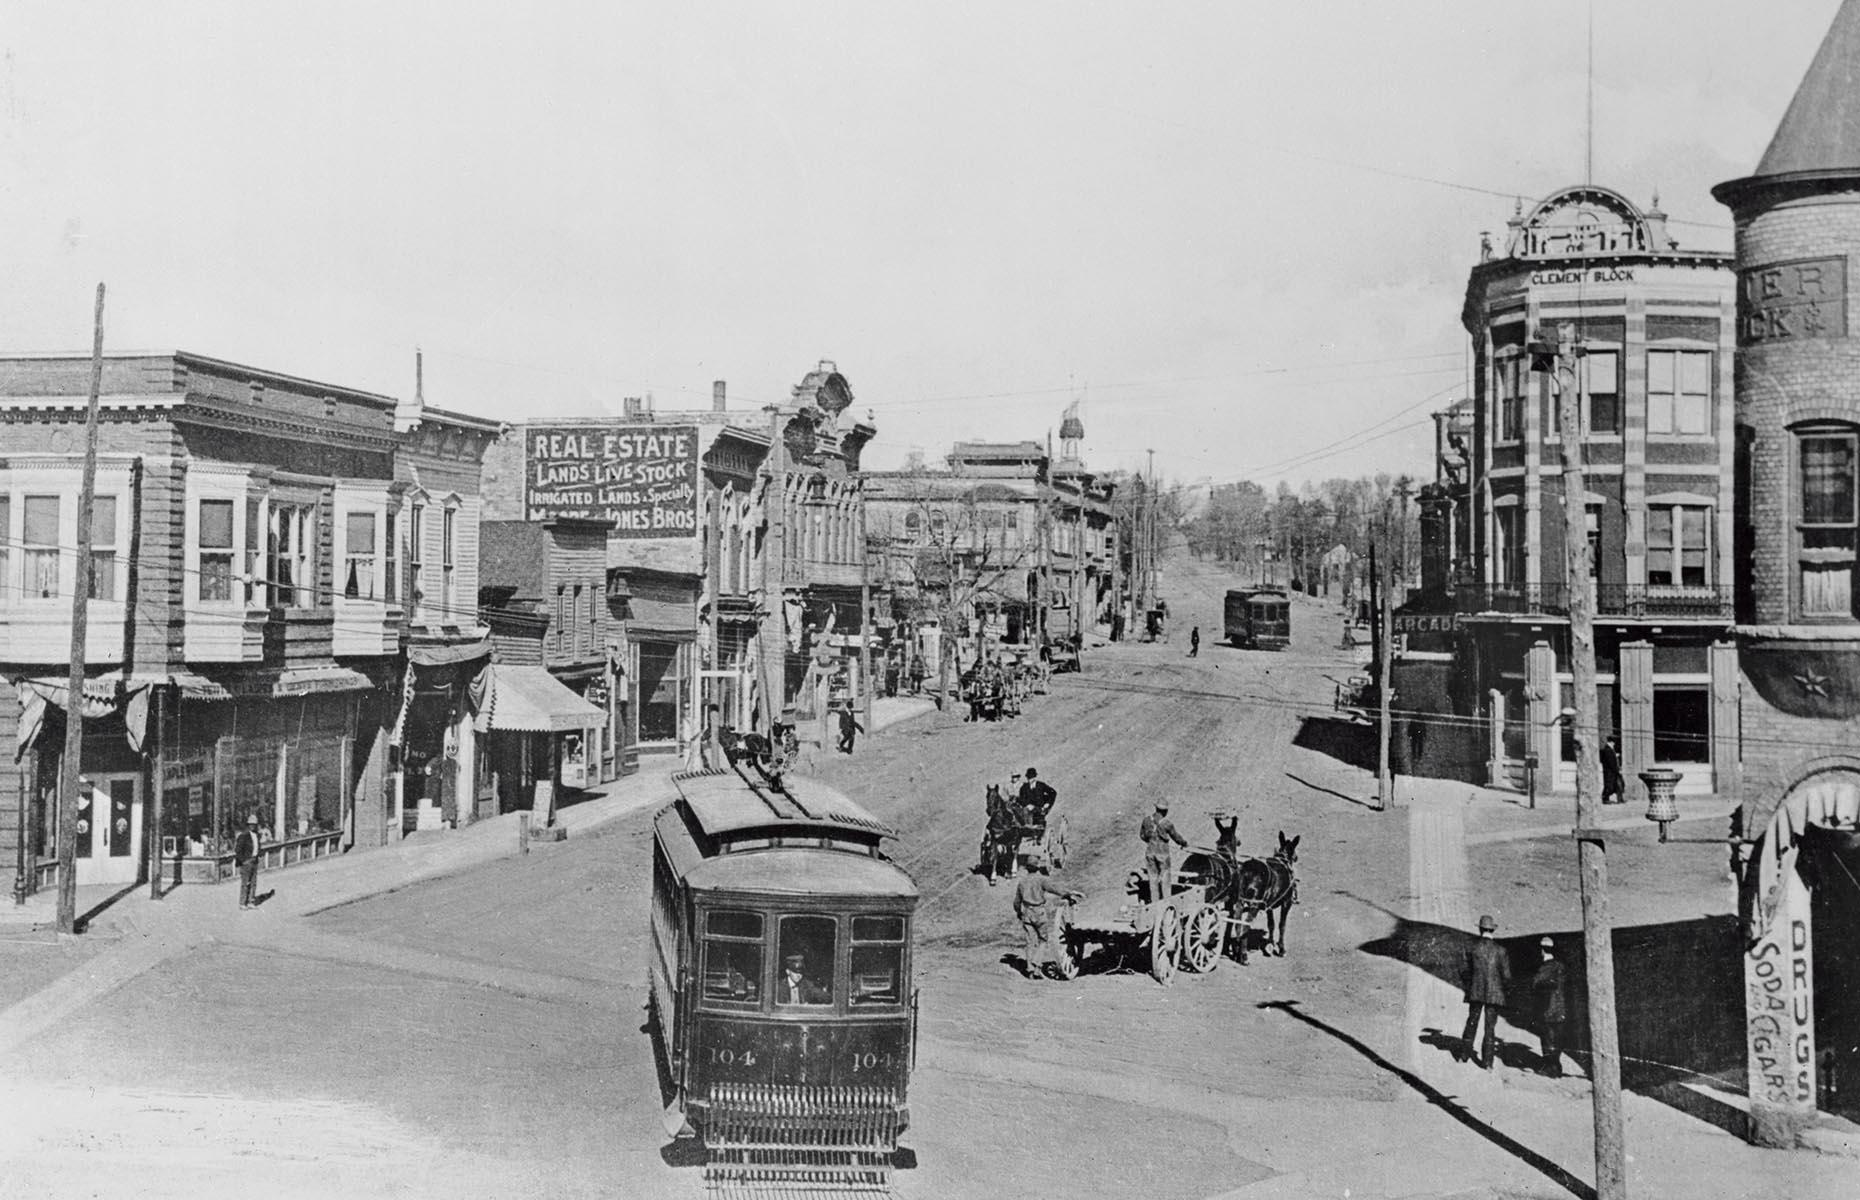 Slide 6 of 34: Due to the harsh conditions – hot weather, unproductive soil and limited water resources – Las Vegas grew slowly at first. There was an exception to the rule though. One area flourished, rapidly developing as a red light and gambling district. Even though the state outlawed gambling in 1910, illegal casinos continued underground until 1931 when it was legalized again. The nickname Sin City is thought to have originated from the two original blocks of Fremont Street, where gambling, ladies of the night and liquor were all easily accessible.